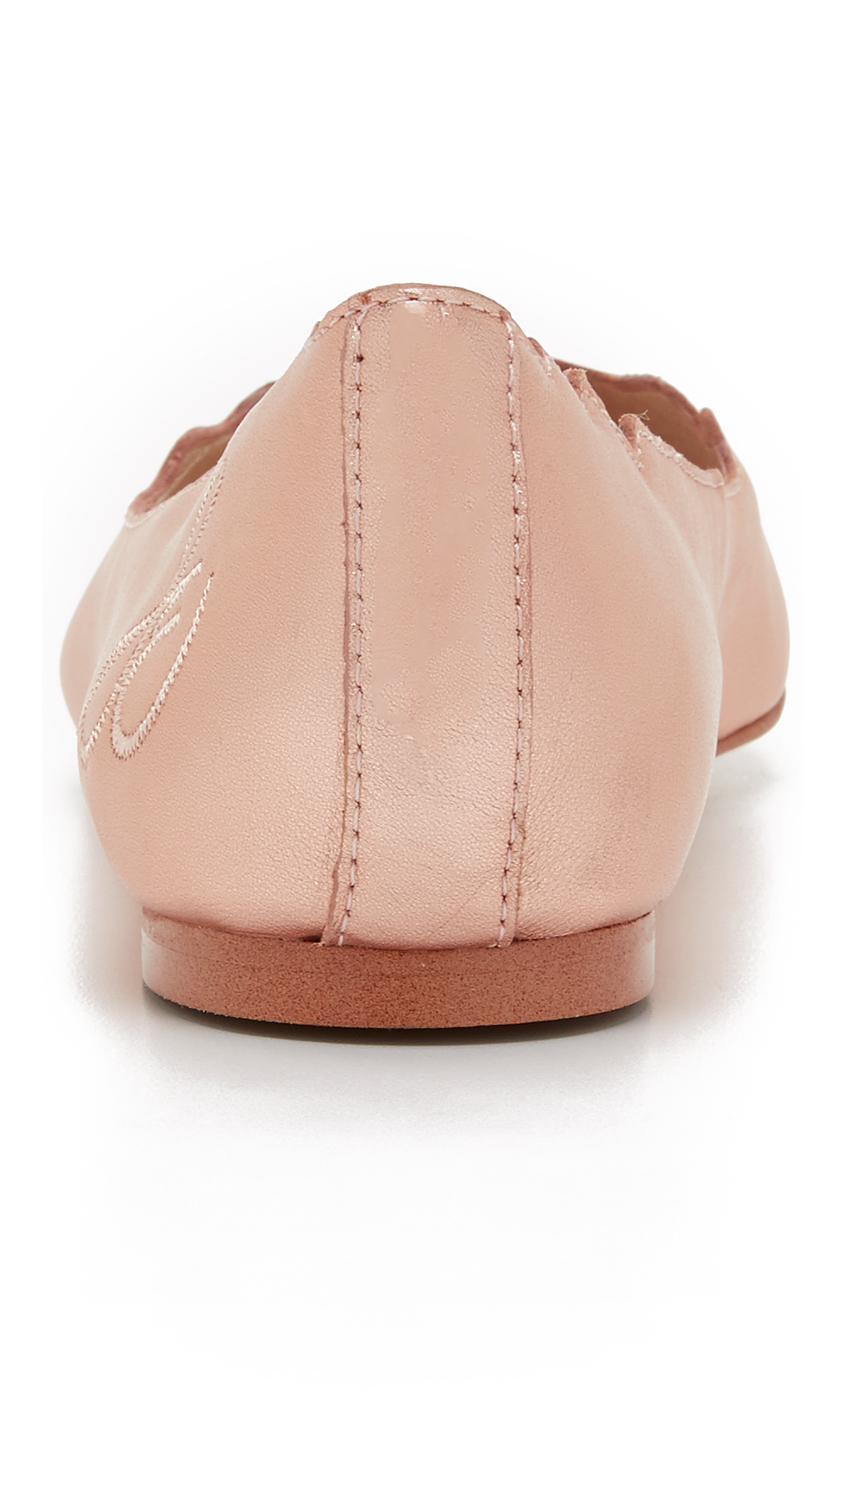 49aa9ae33295a Lyst - Sam Edelman Augusta Scalloped Ballet Flats in Pink